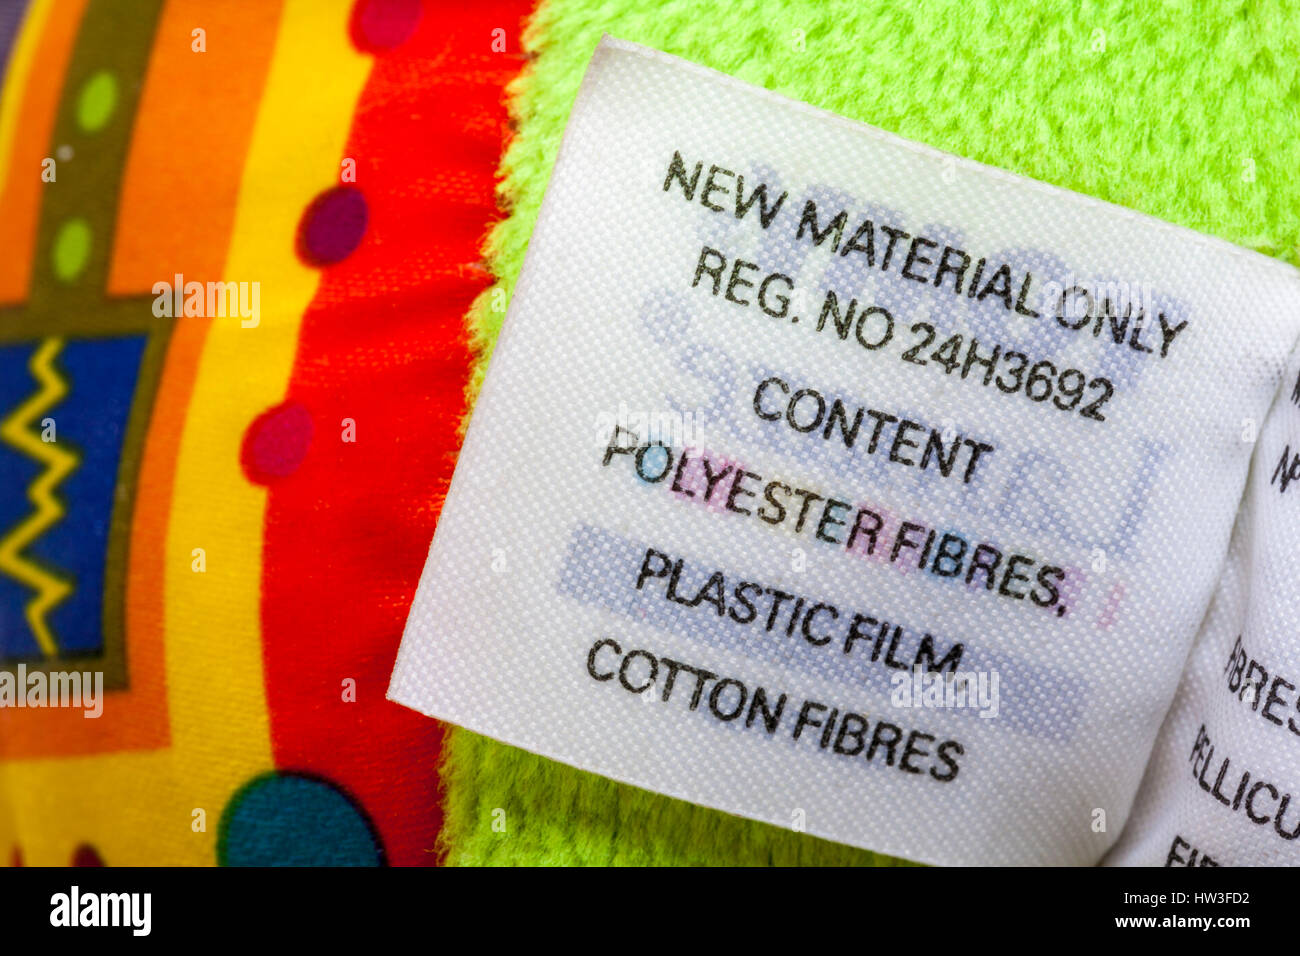 new material only content polyester fibres, plastic film, cotton fibres - Information on label on Lamaze Rusty the - Stock Image